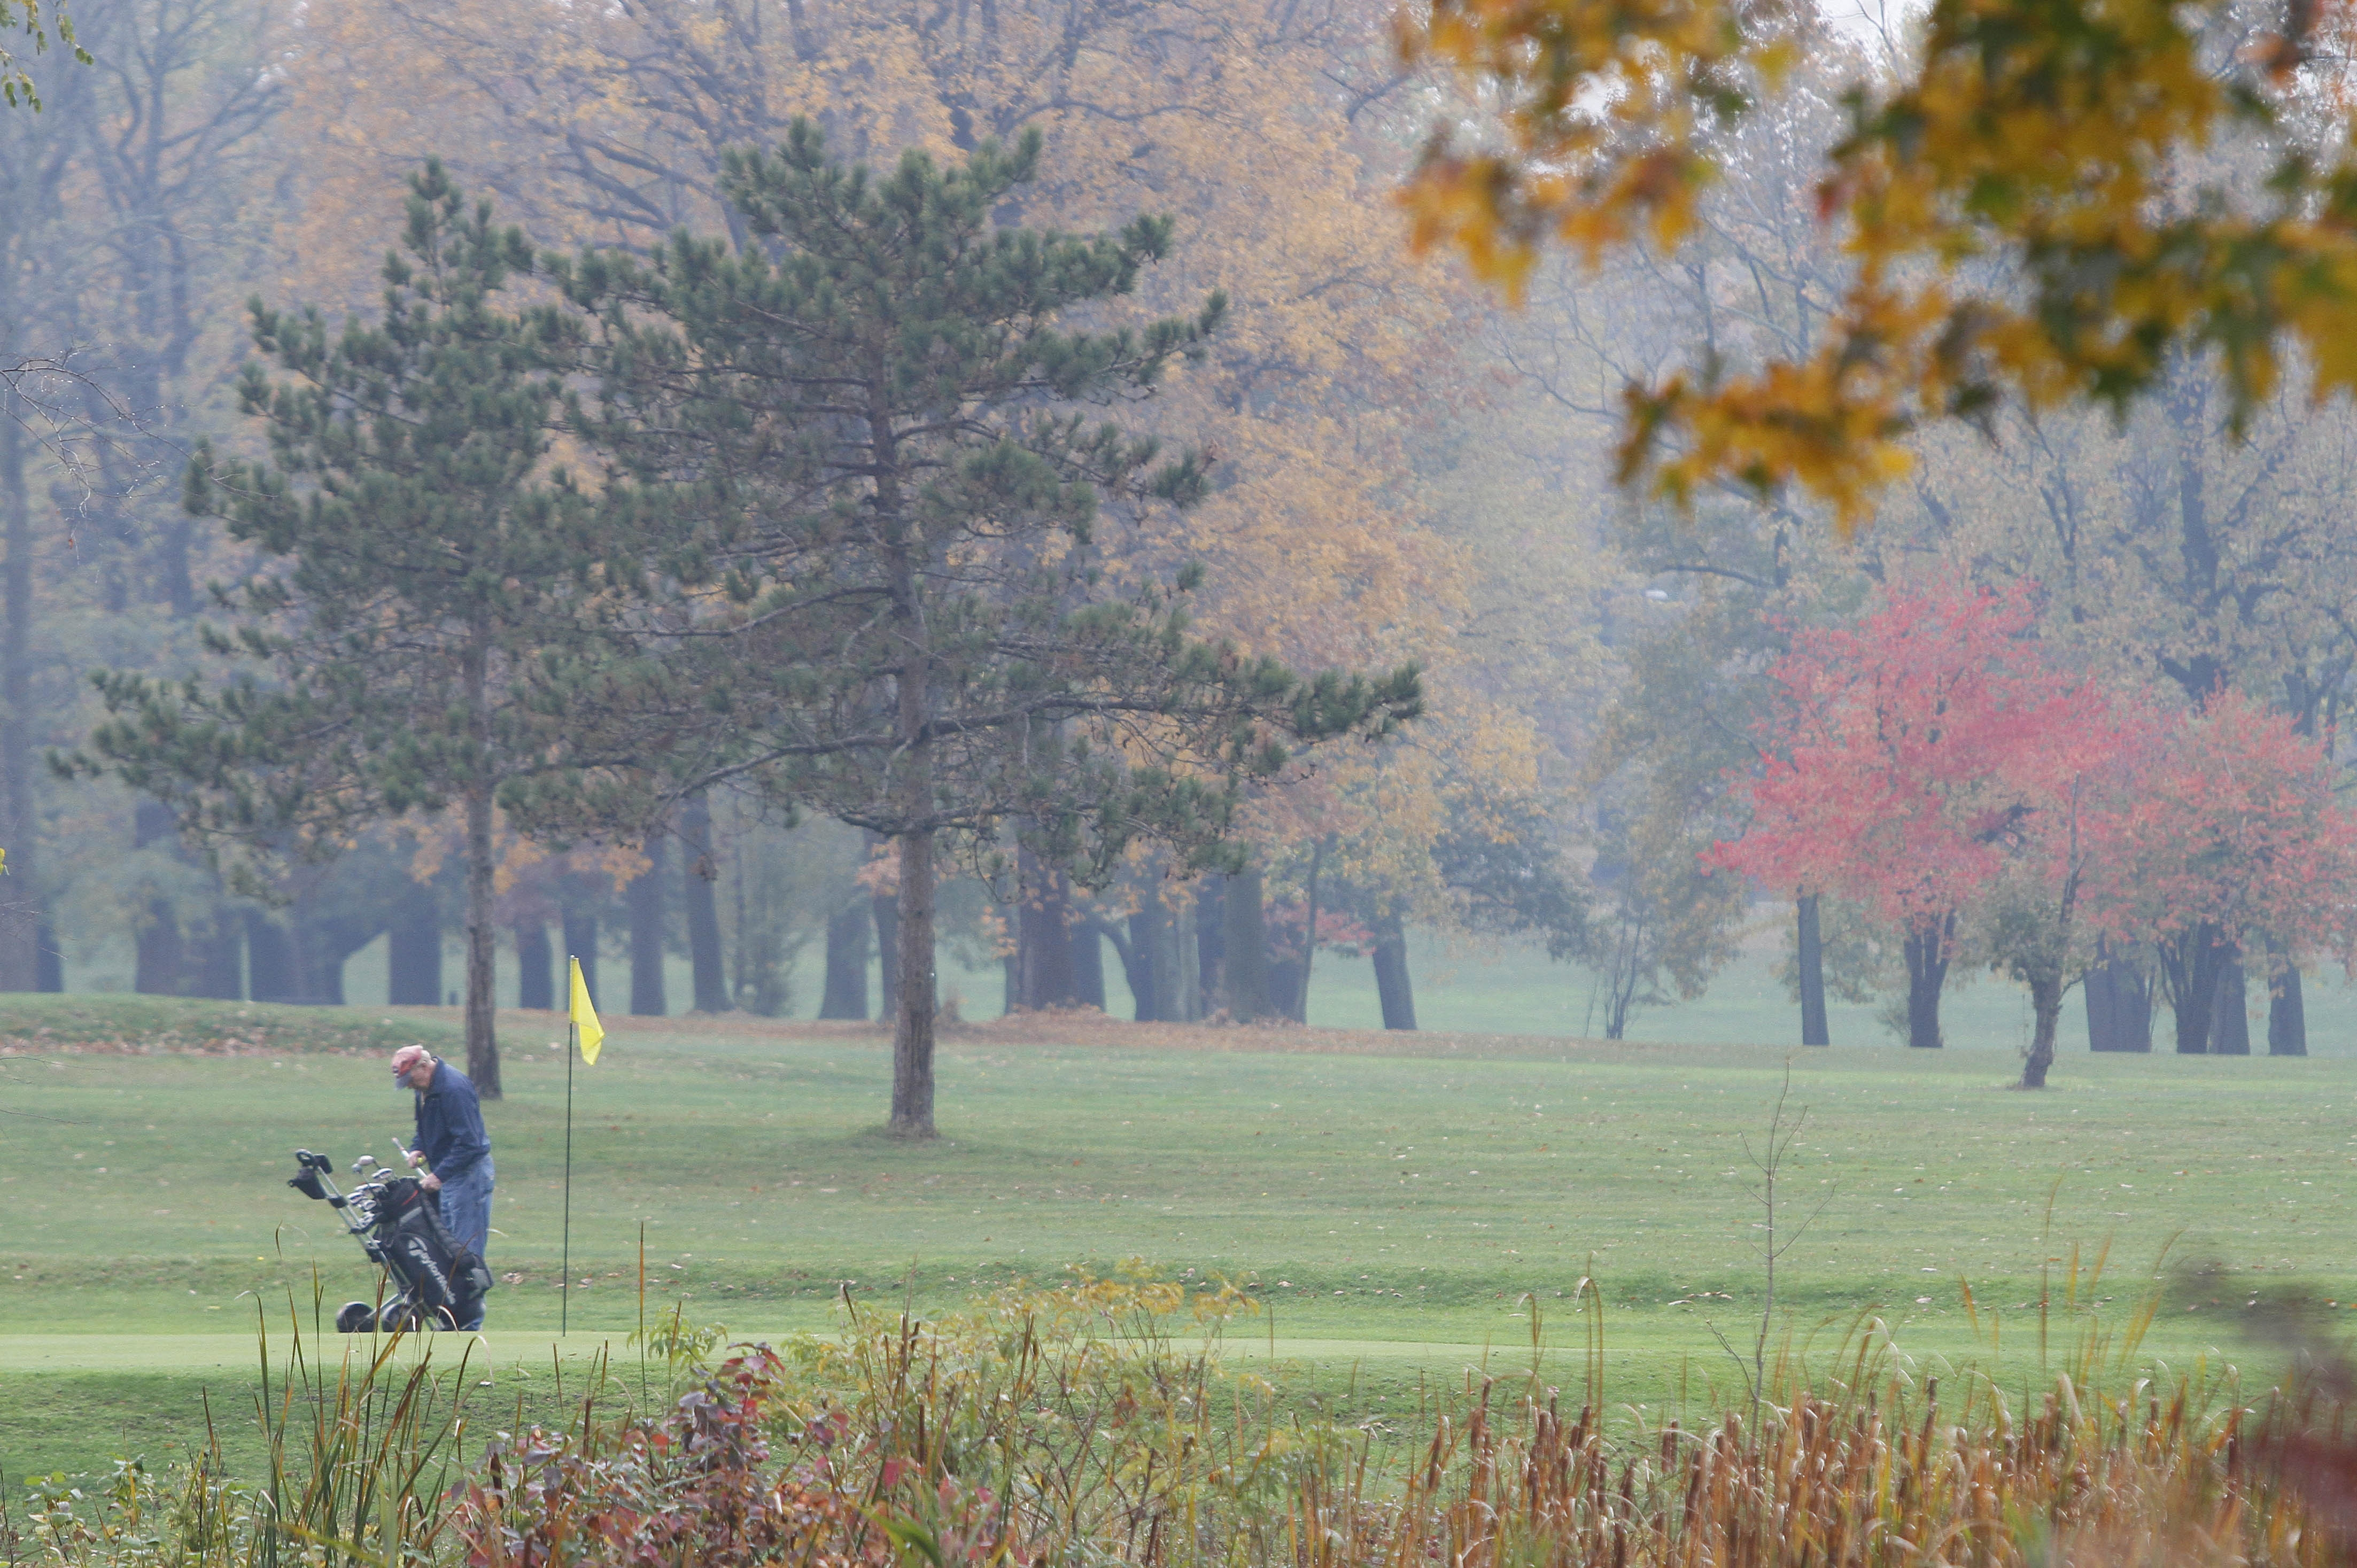 A golfer plays at the South Park golf course. The Olmsted conservancy would like to relocate the course in order to restore Frederick Law Olmsted's plan for an arboretum at South Park.   (Mark Mulville / Buffalo News file photo)